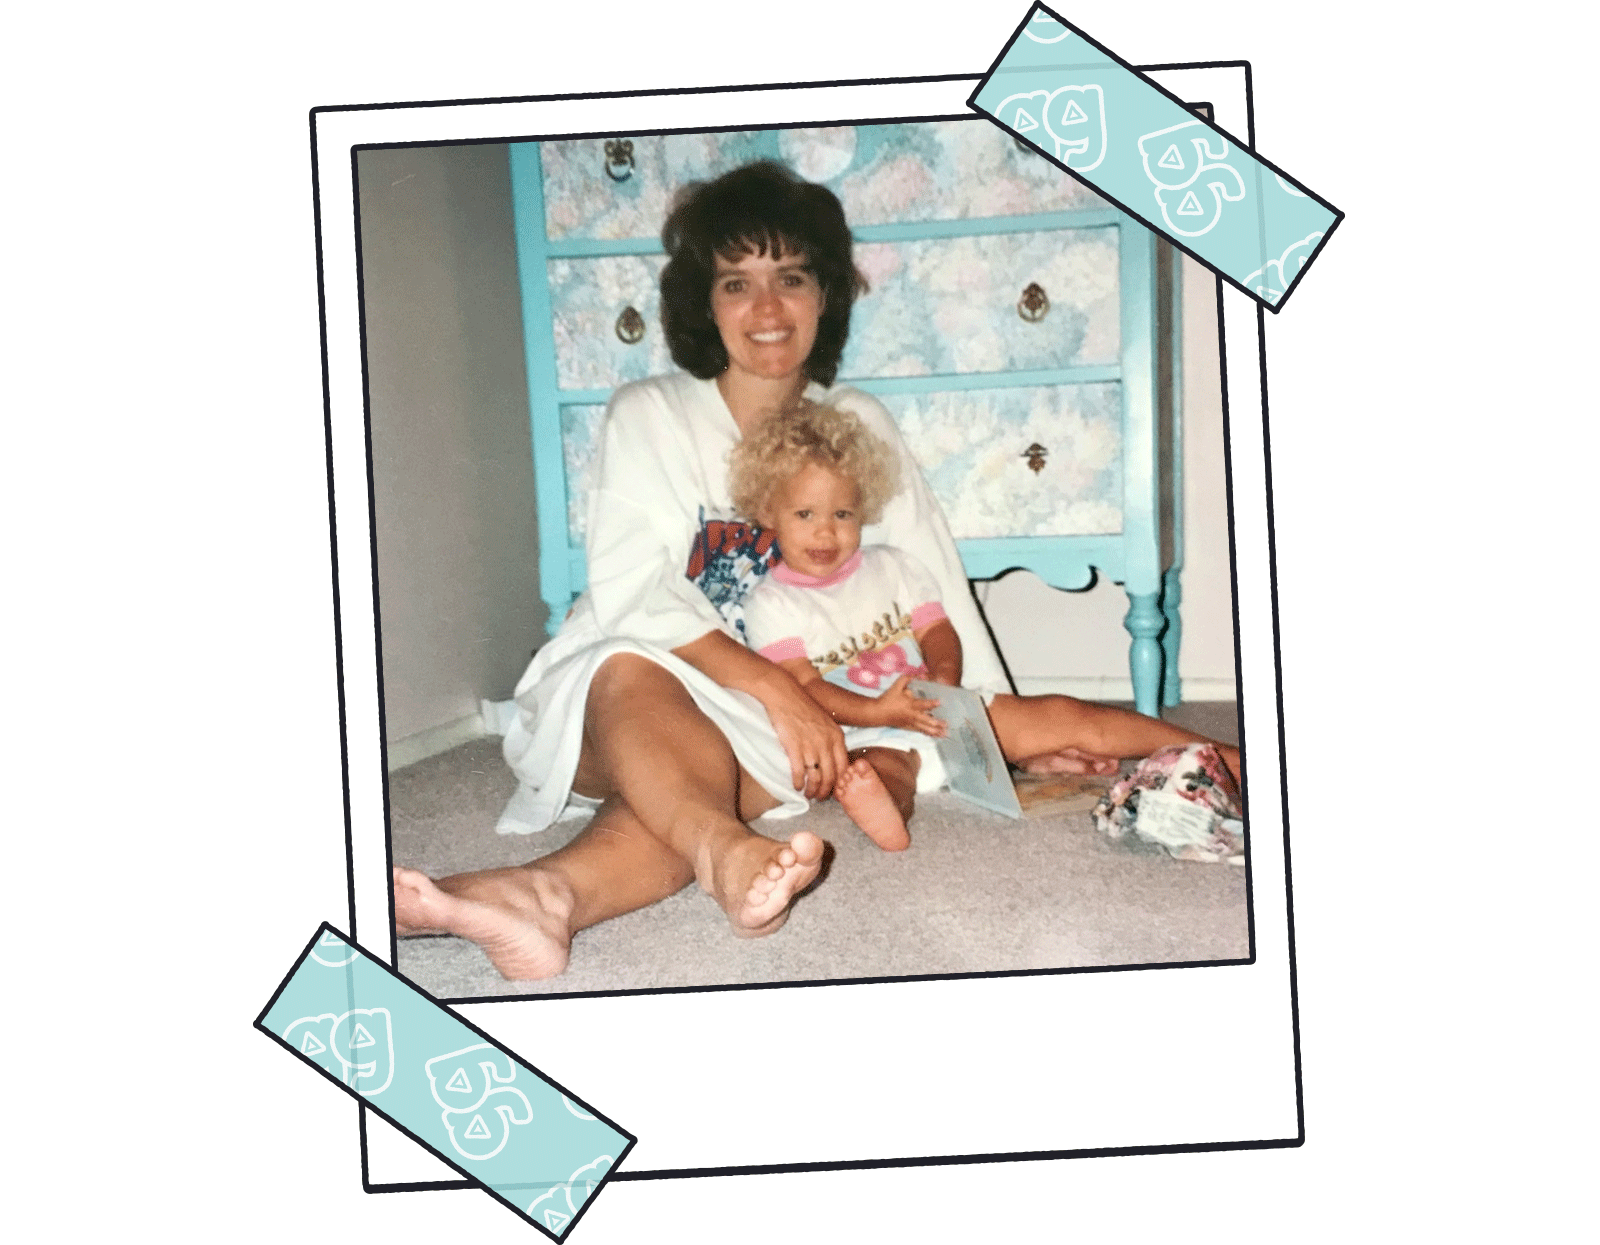 Mother in oversized t-shirt sitting with daughter on the floor in front of a floral-print dresser